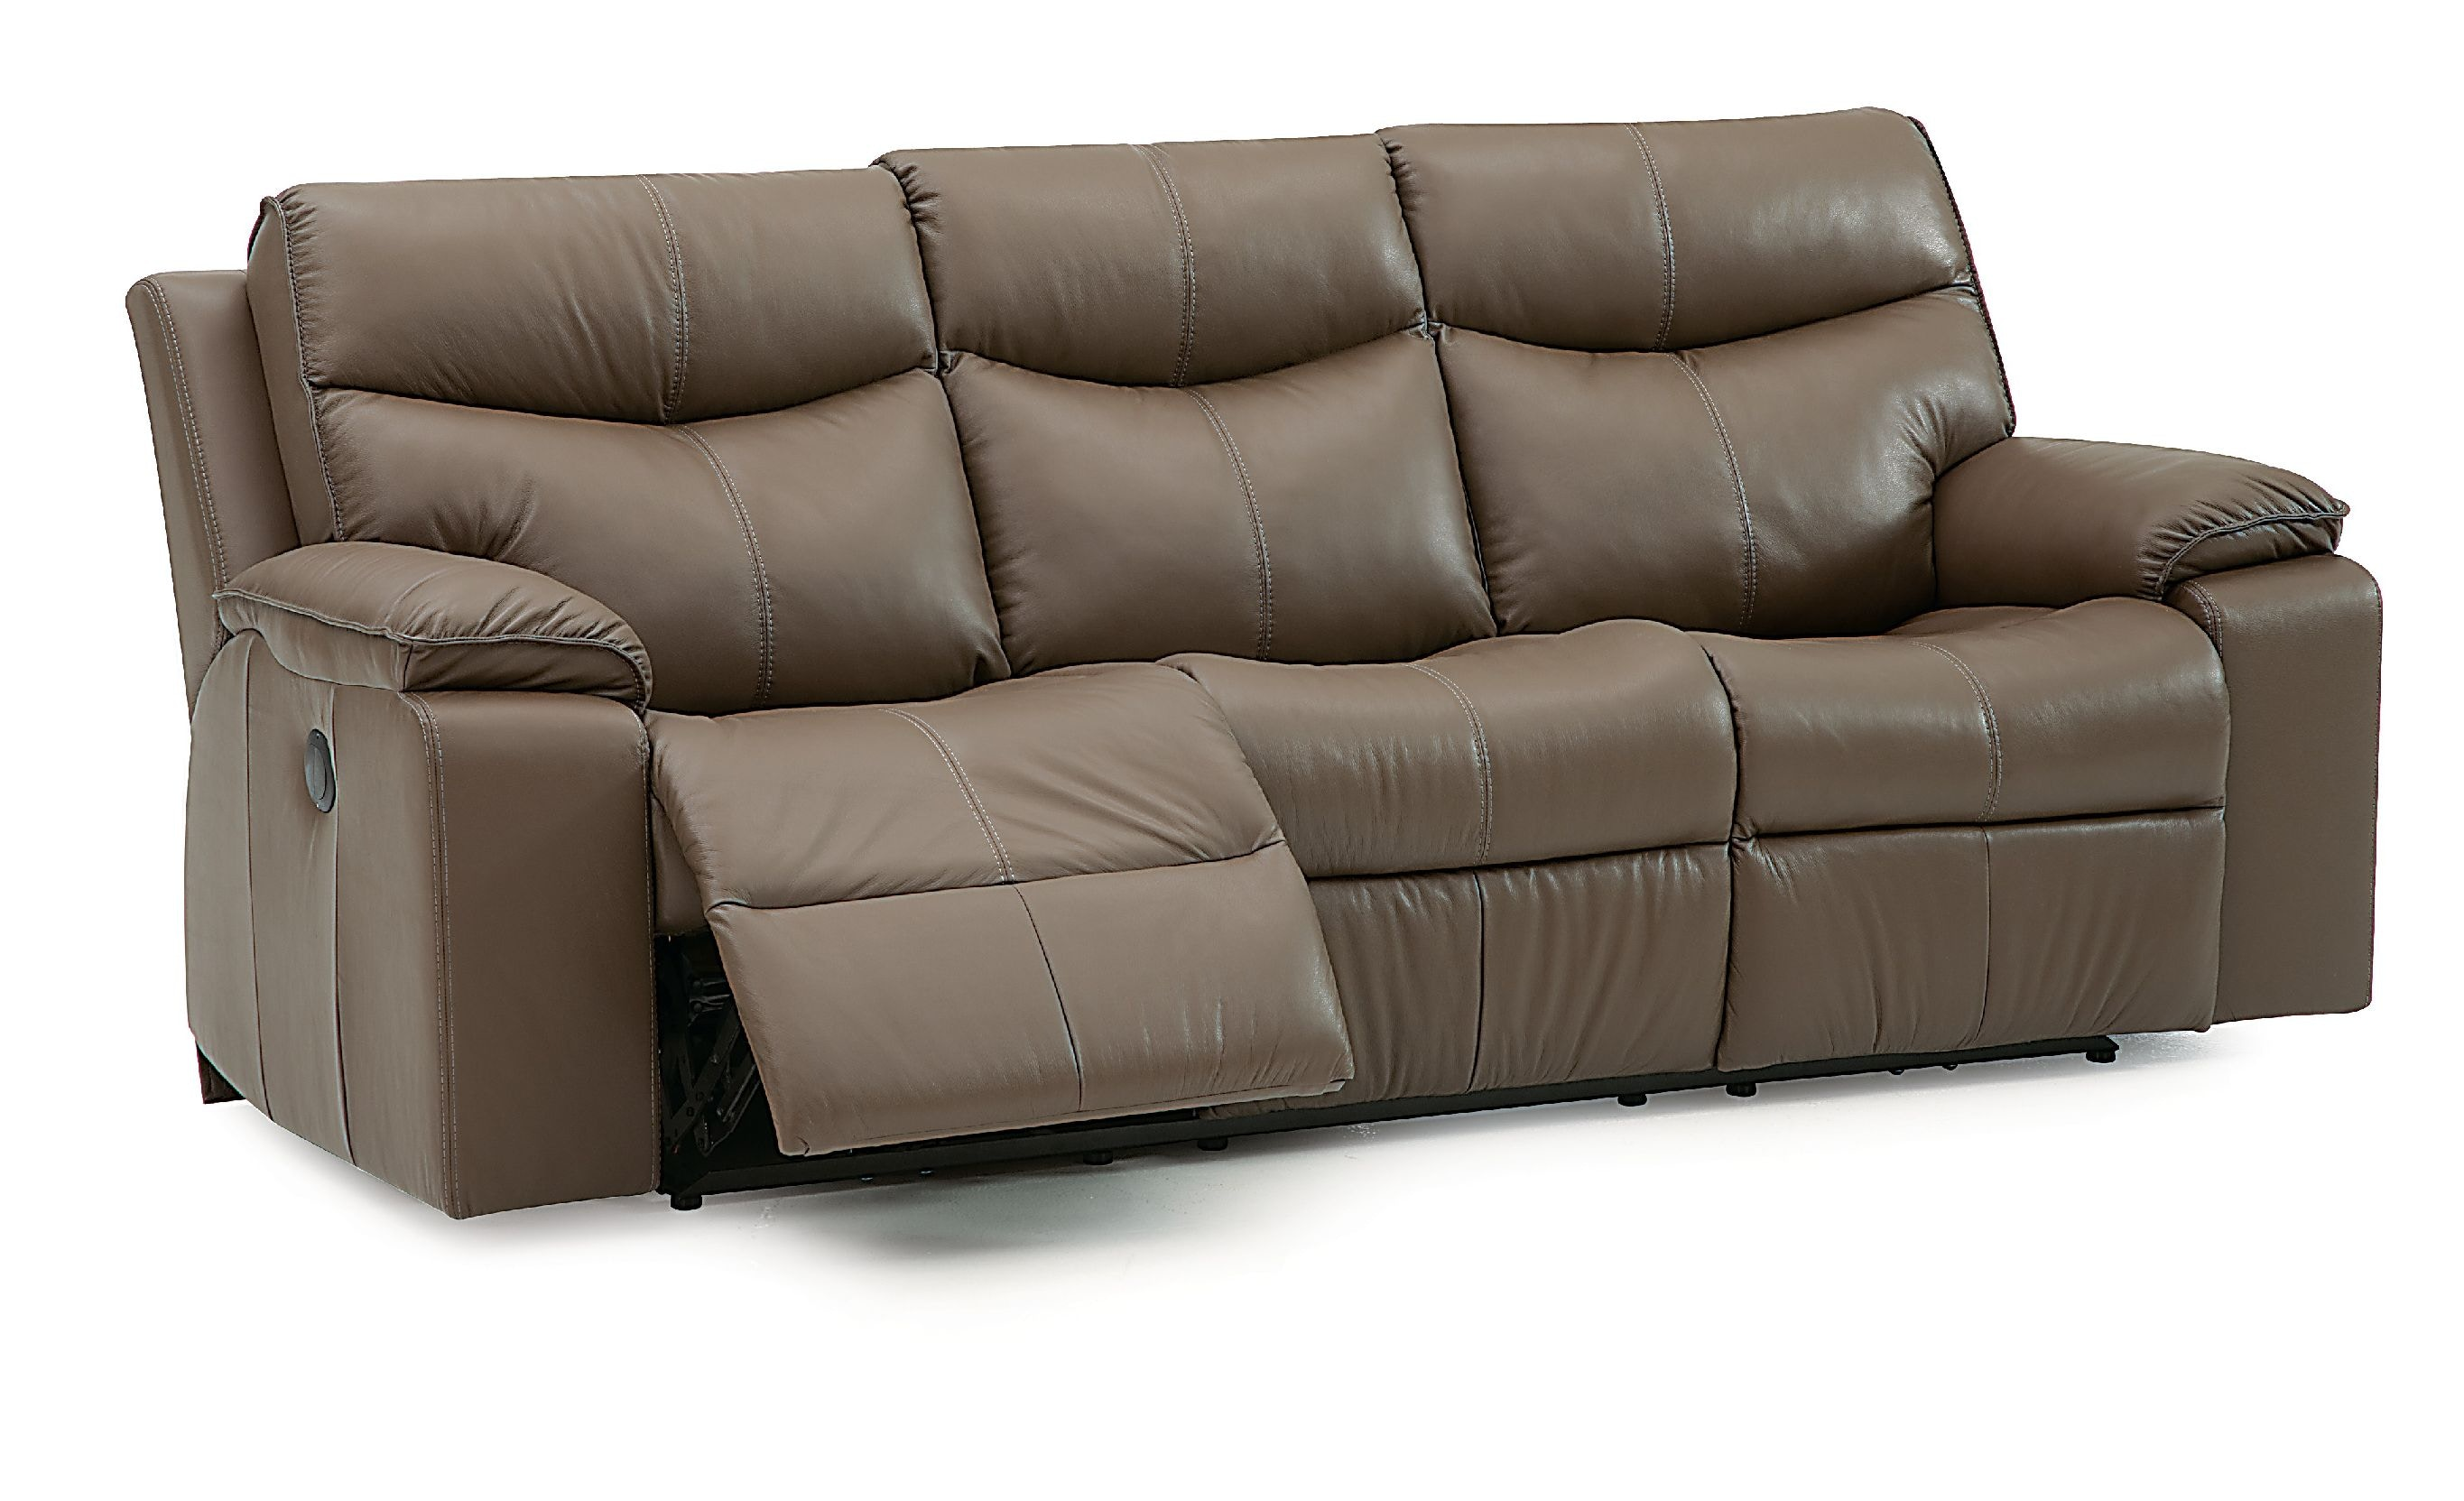 Palliser Furniture Living Room Sofa Recliner 41034 51   Furniture Kingdom    Gainesville, FL